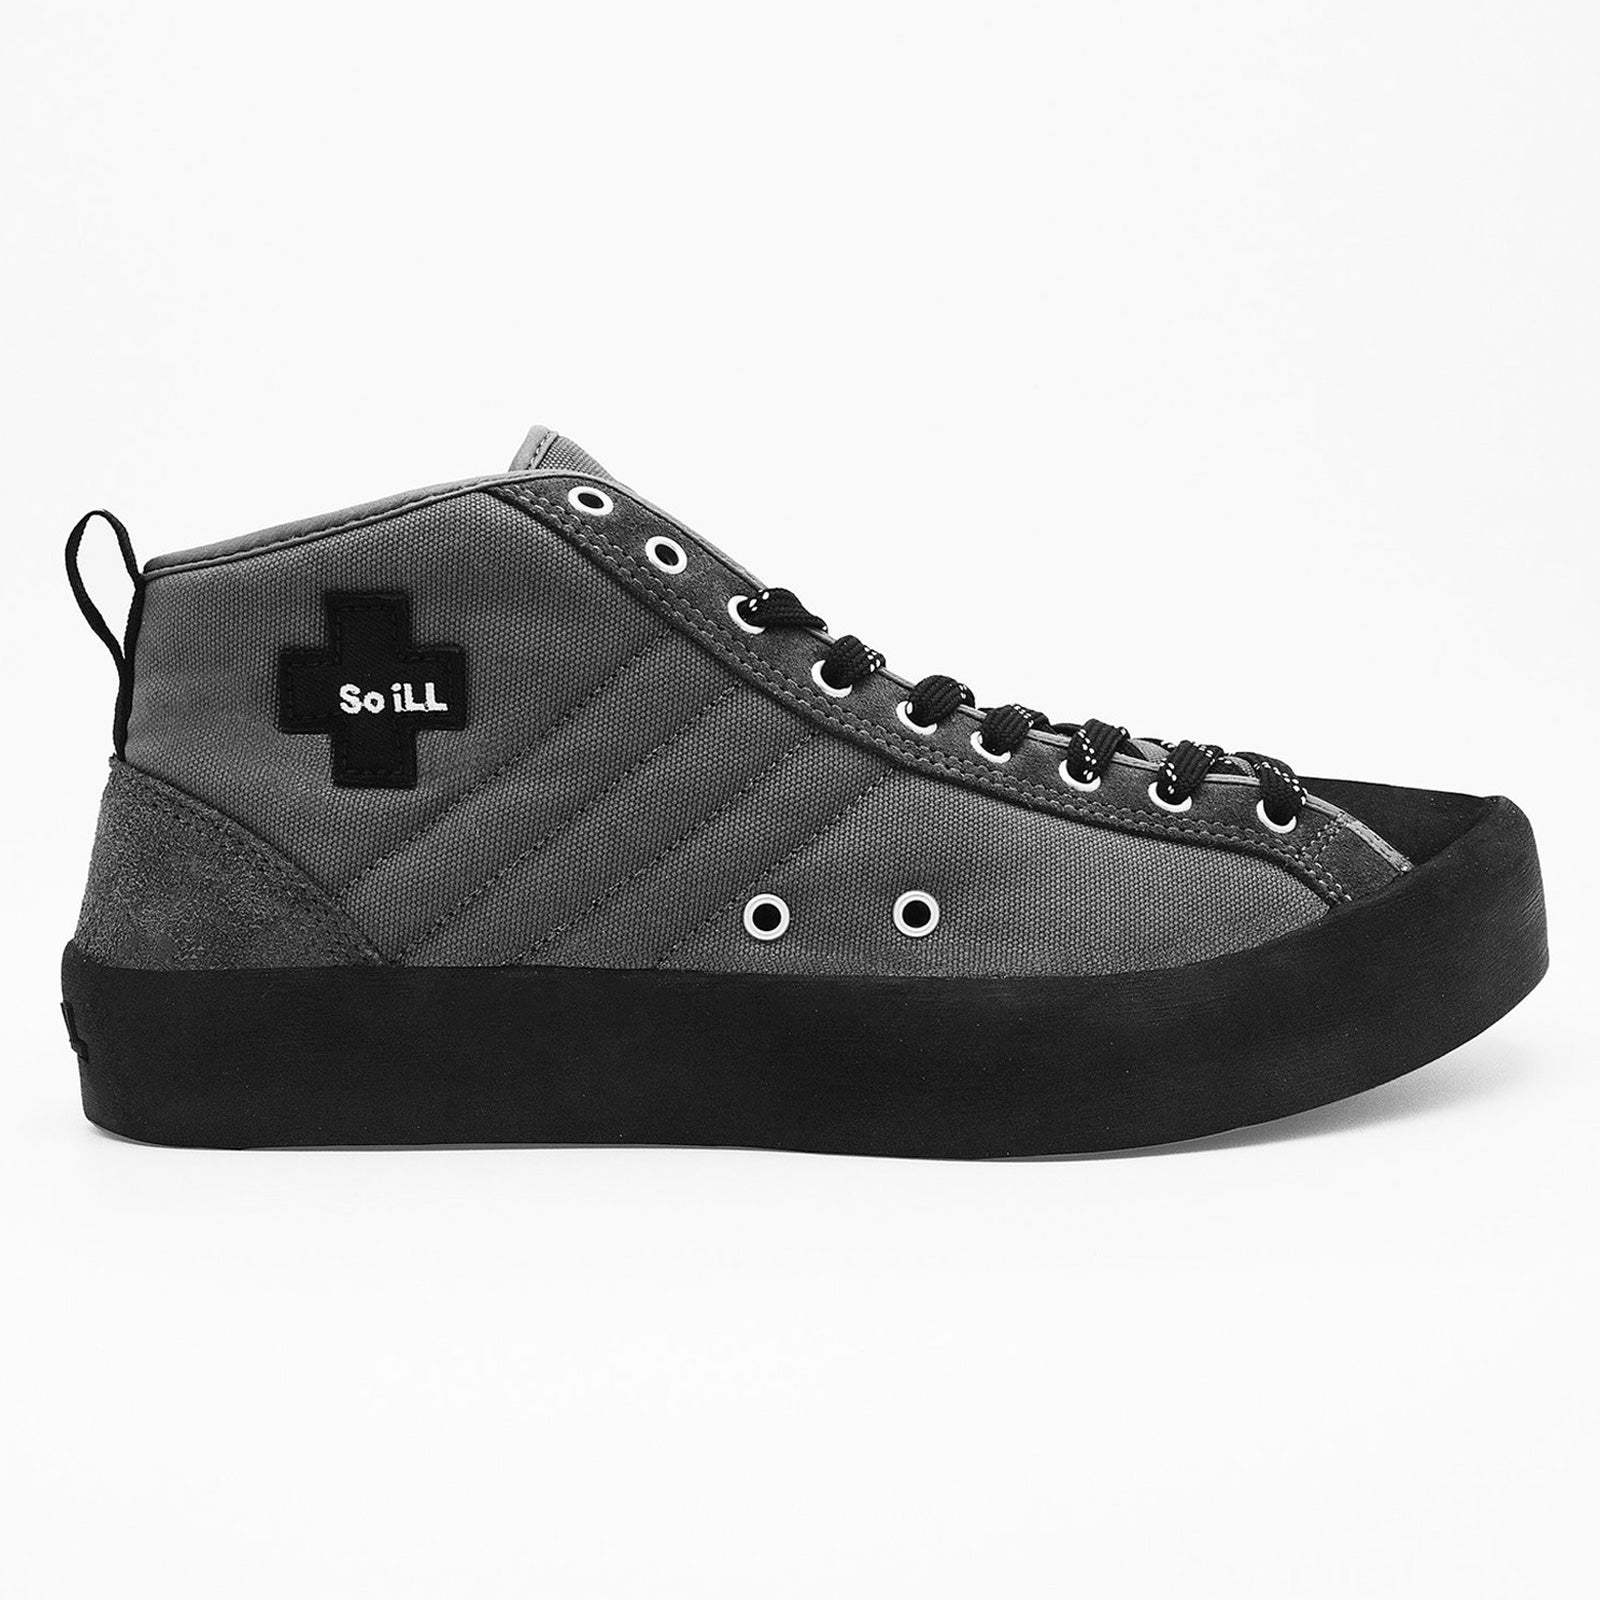 So iLL Approach shoes grey with black trim